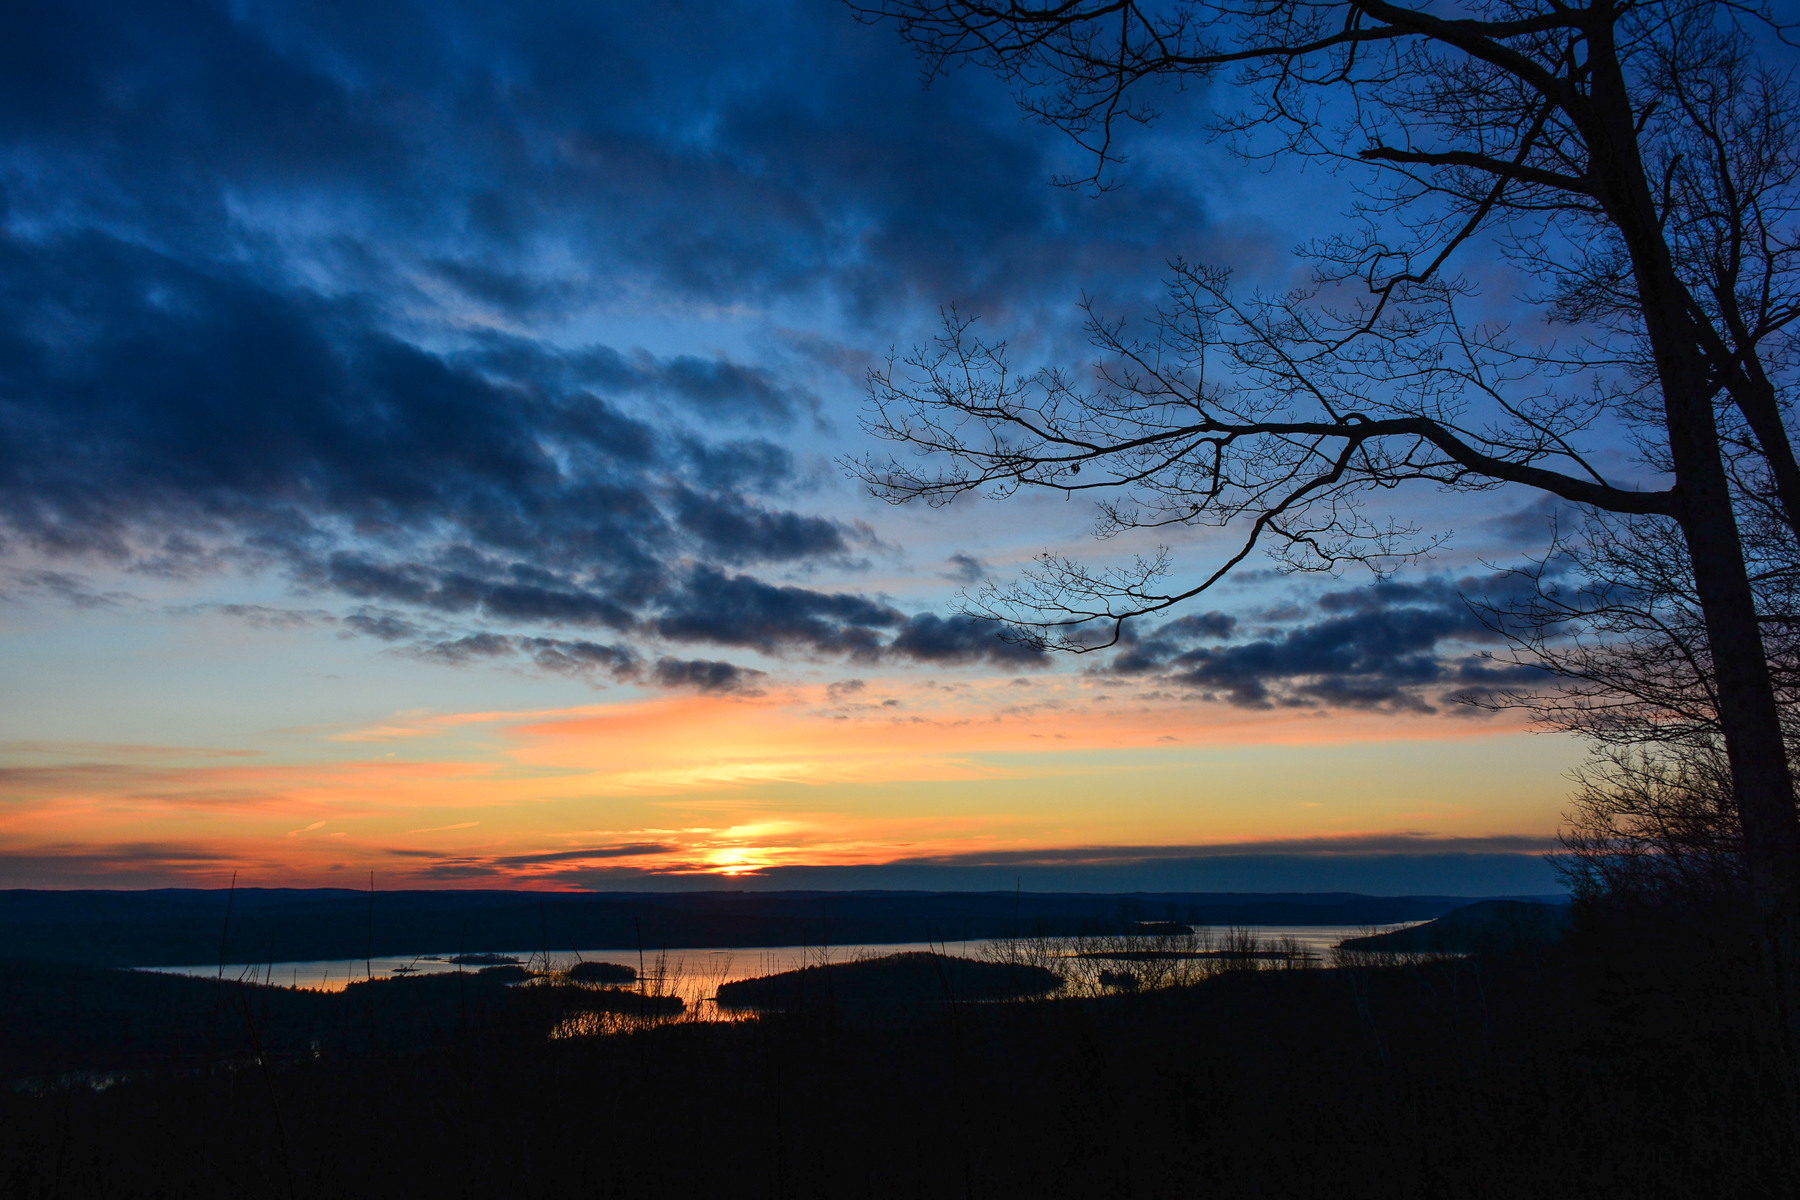 Sunrise, New Salem Lookout, December 31st, 2014.